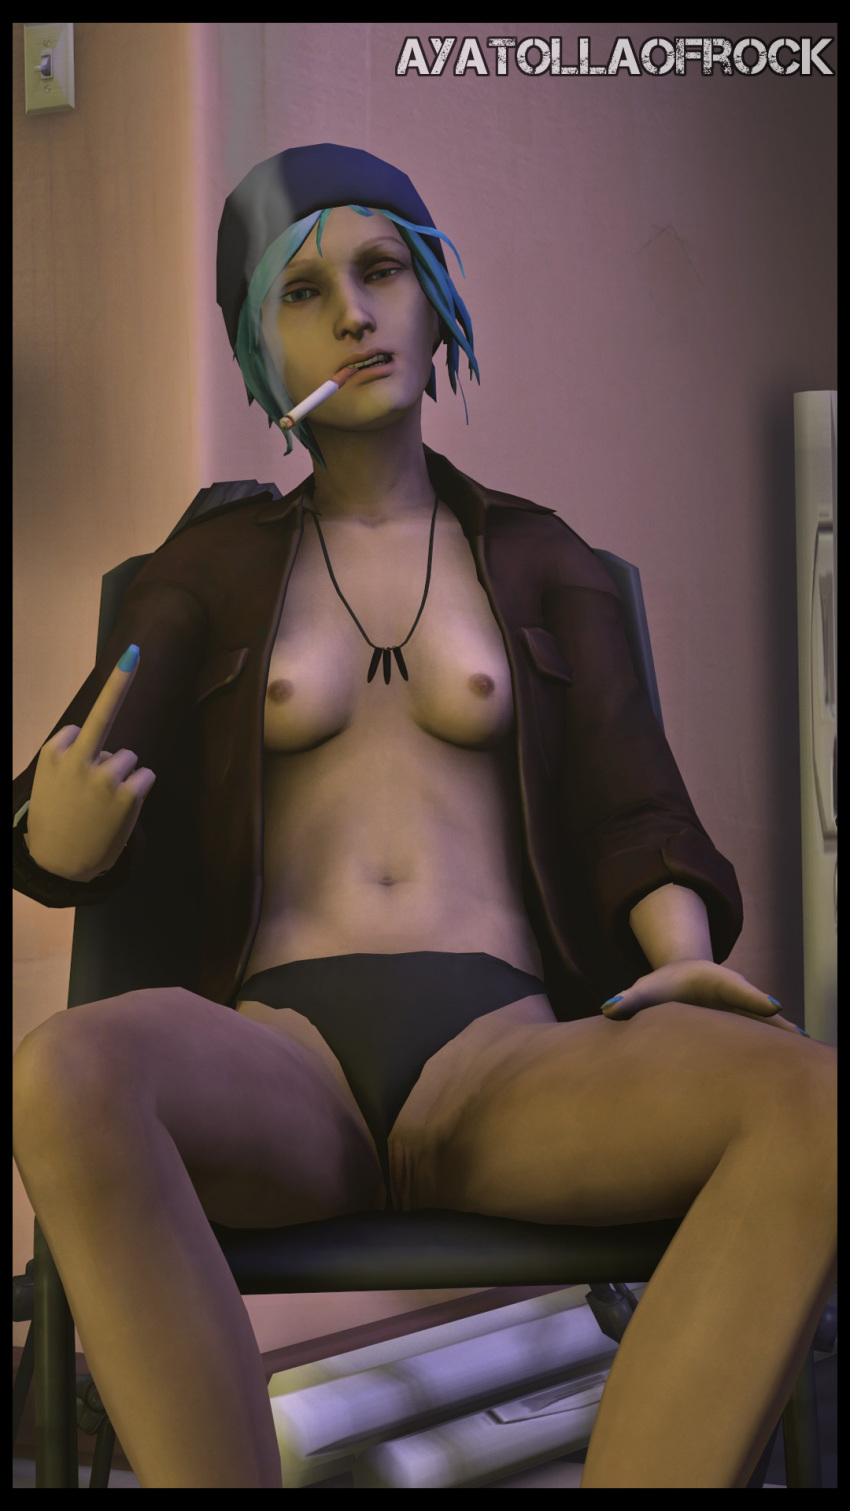 bowers frank strange life is Nobody in particular futa on male